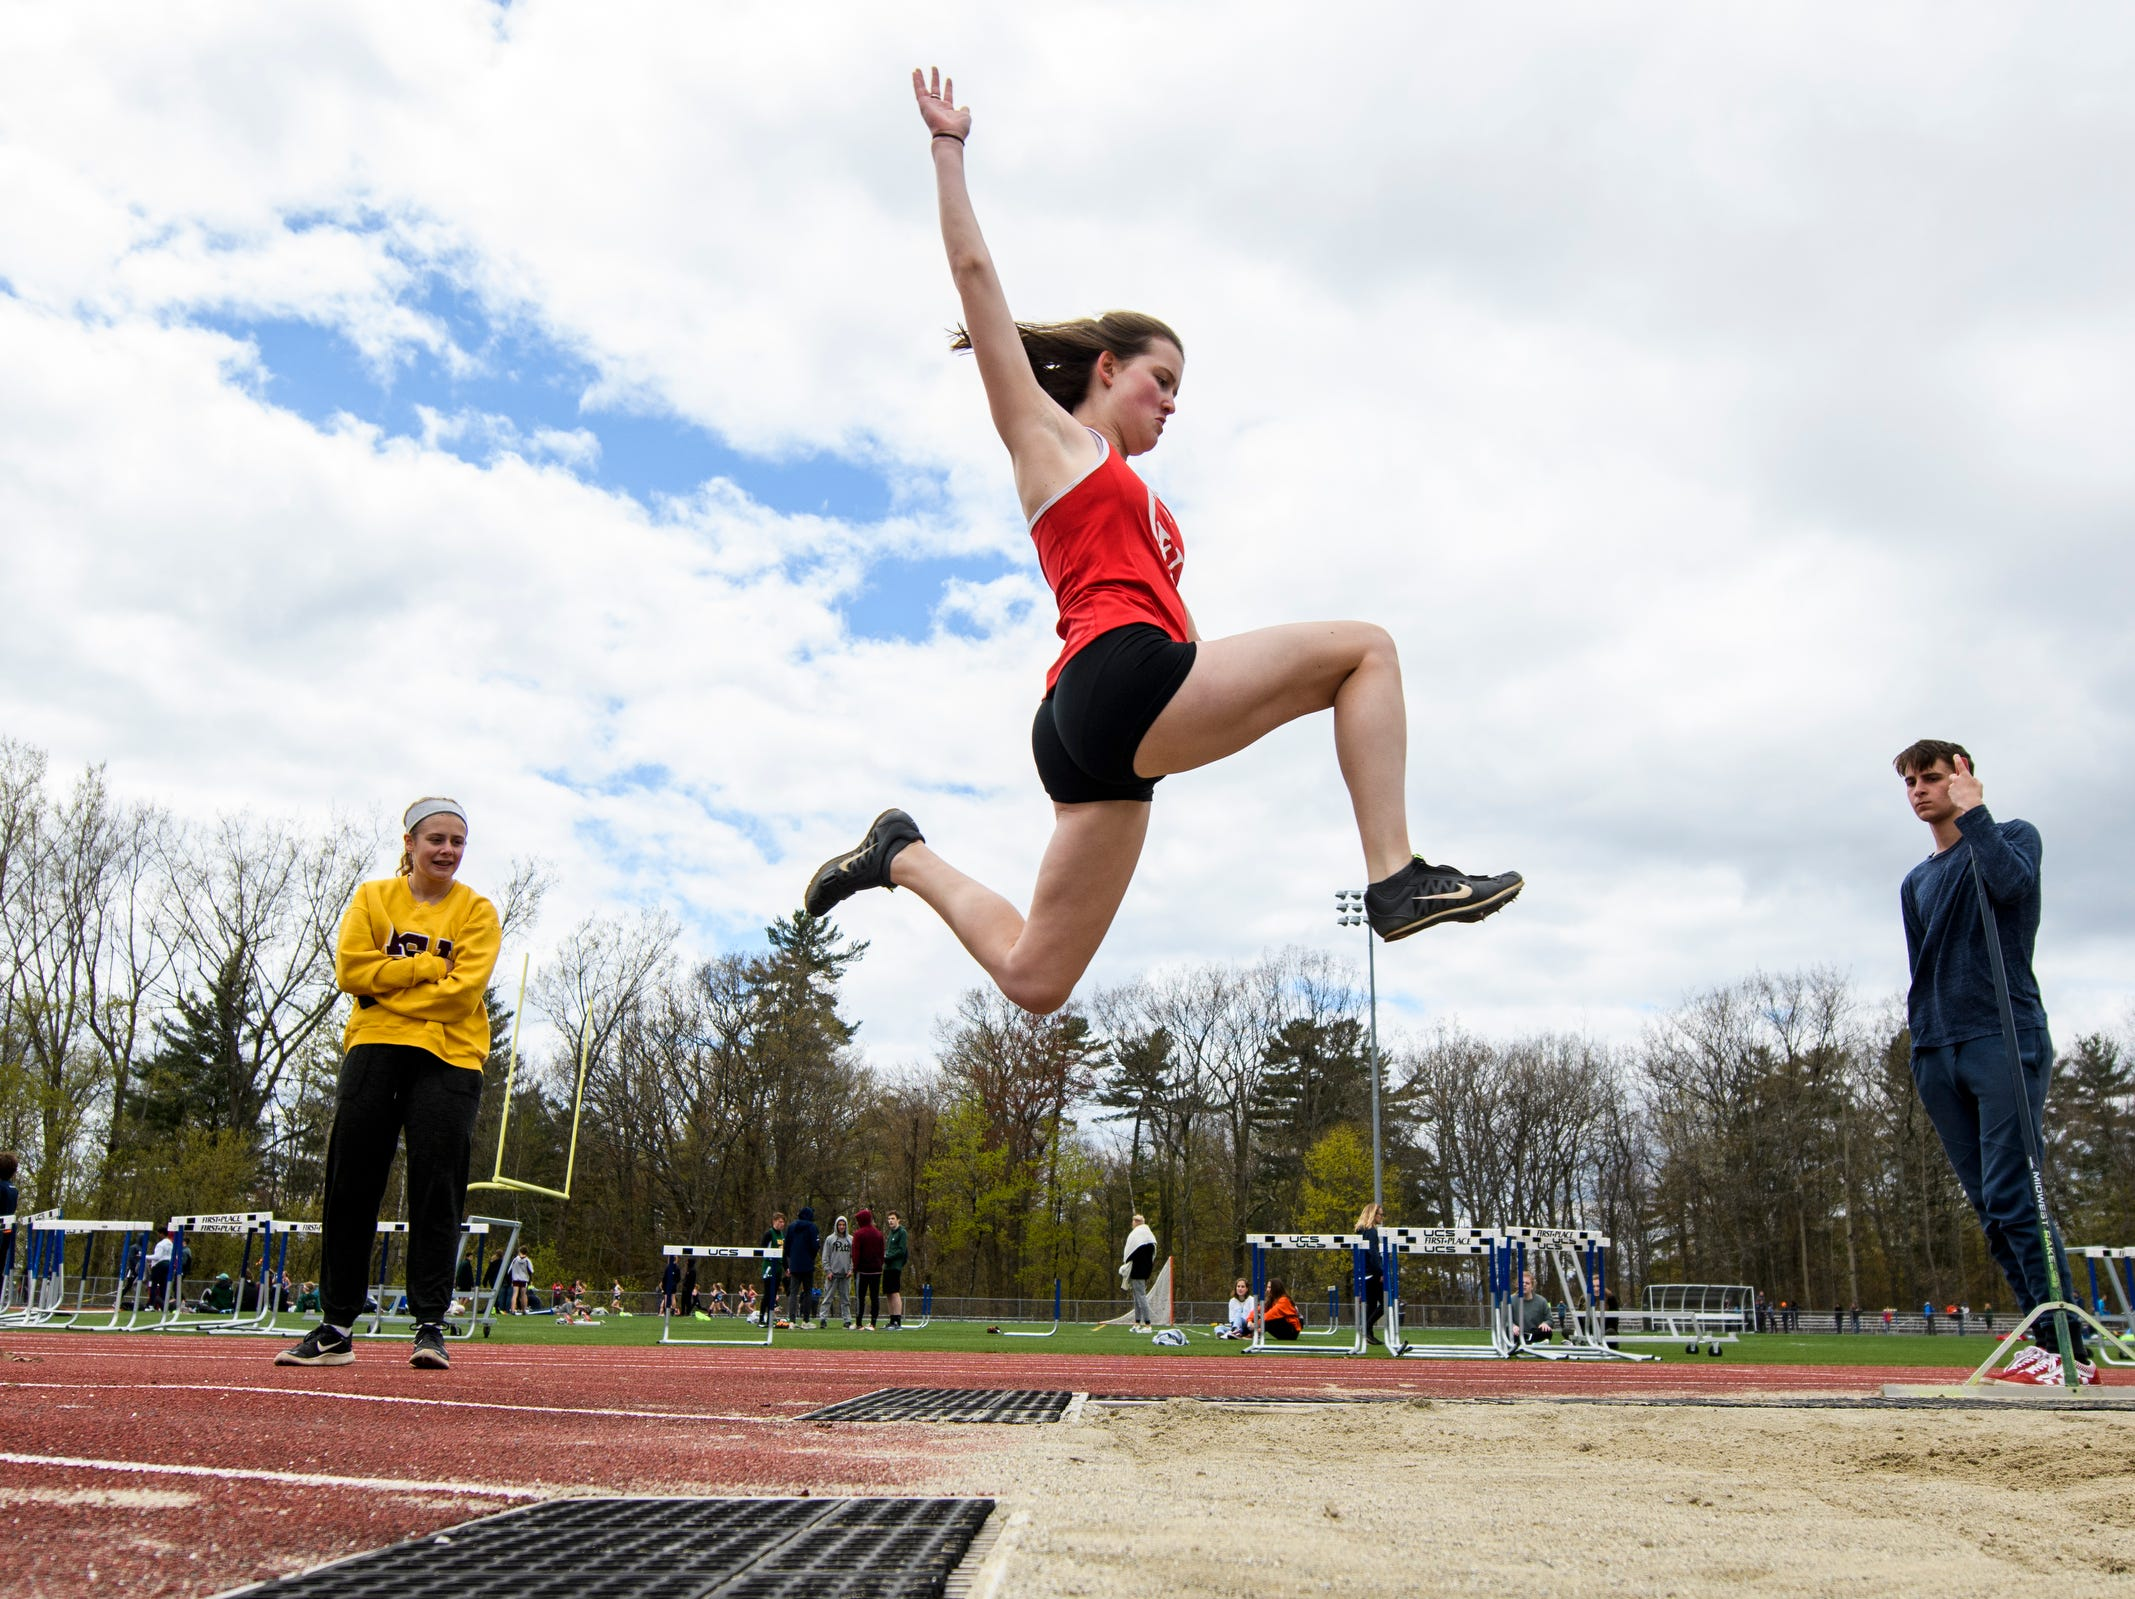 CVU's Elena Crites competes in the long jump during the Burlington Invitational high school track and field meet at Buck Hard Field on Saturday May 11, 2019 in Burlington, Vermont.